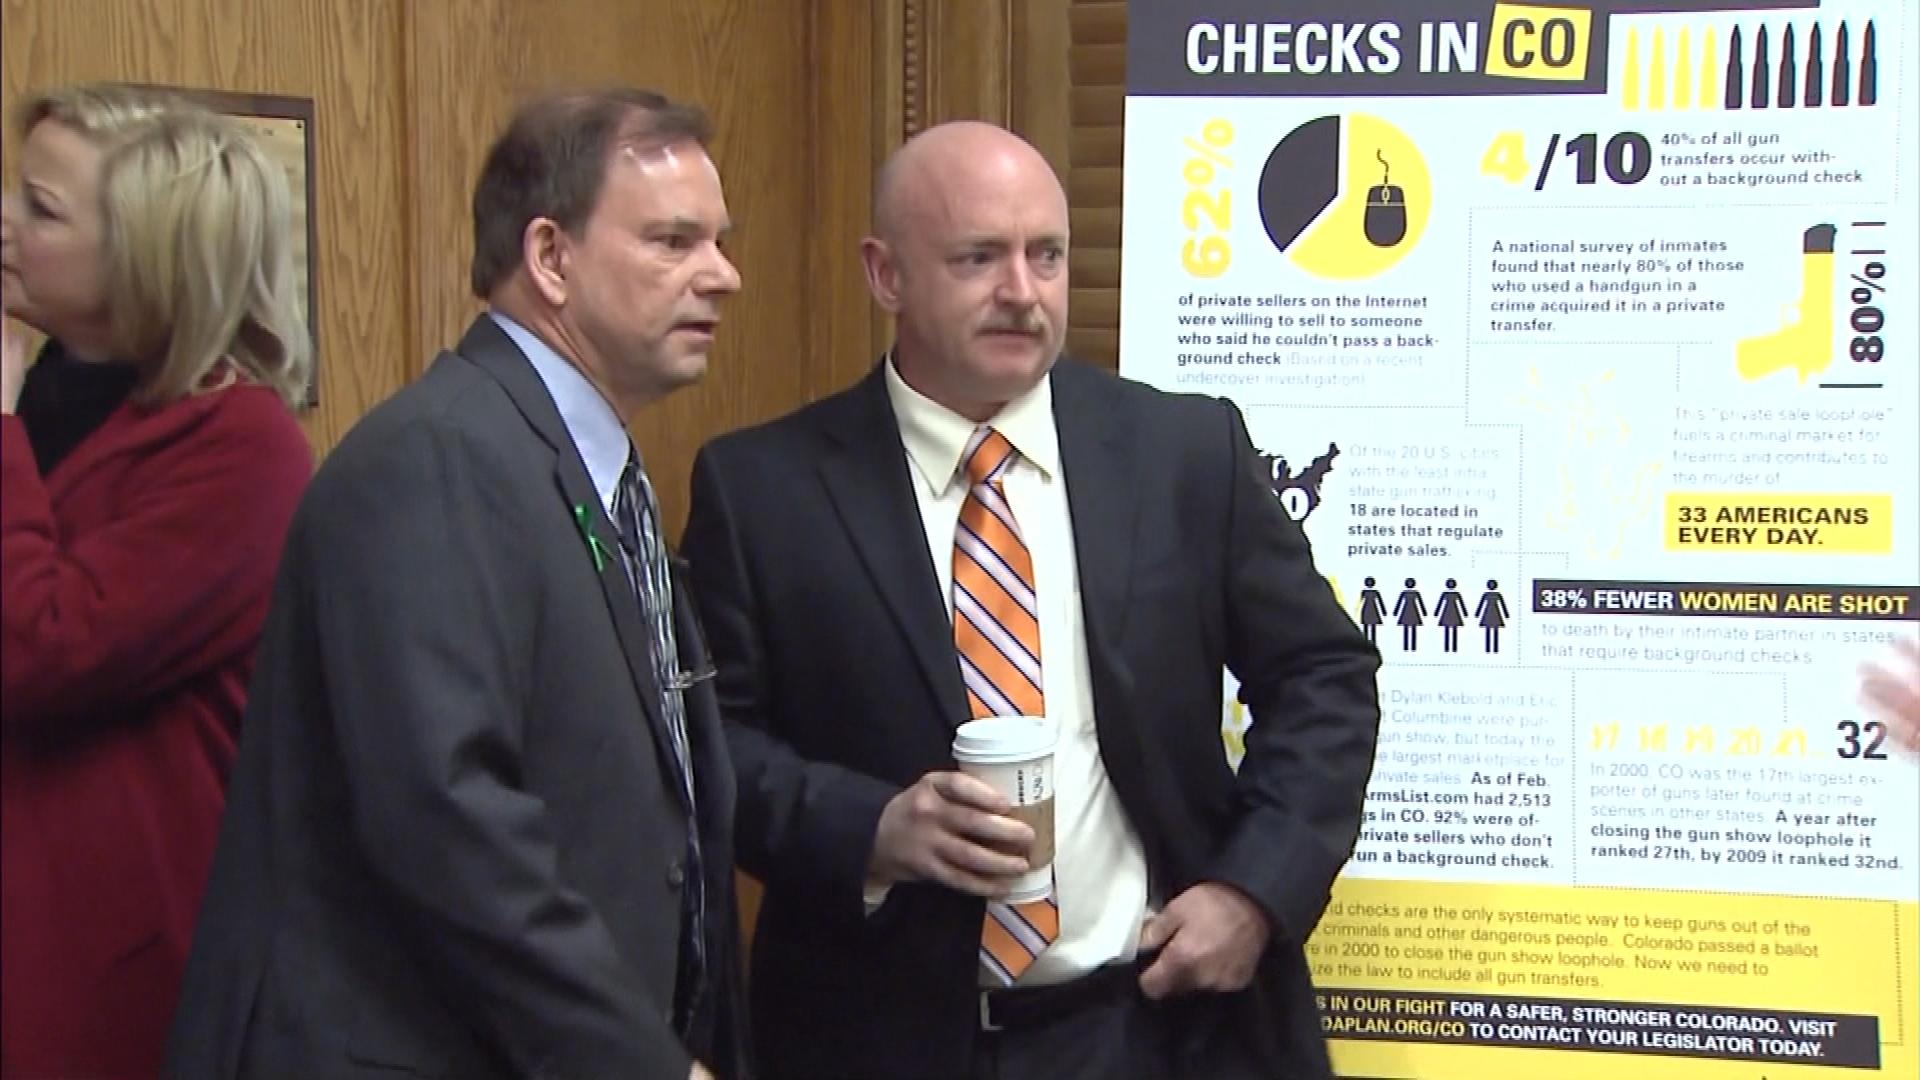 Daniel Mauser, left, who lost a son in the Columbine High School massacre, speaks with Mark Kelly in the Colorado capitol. (credit: CBS)